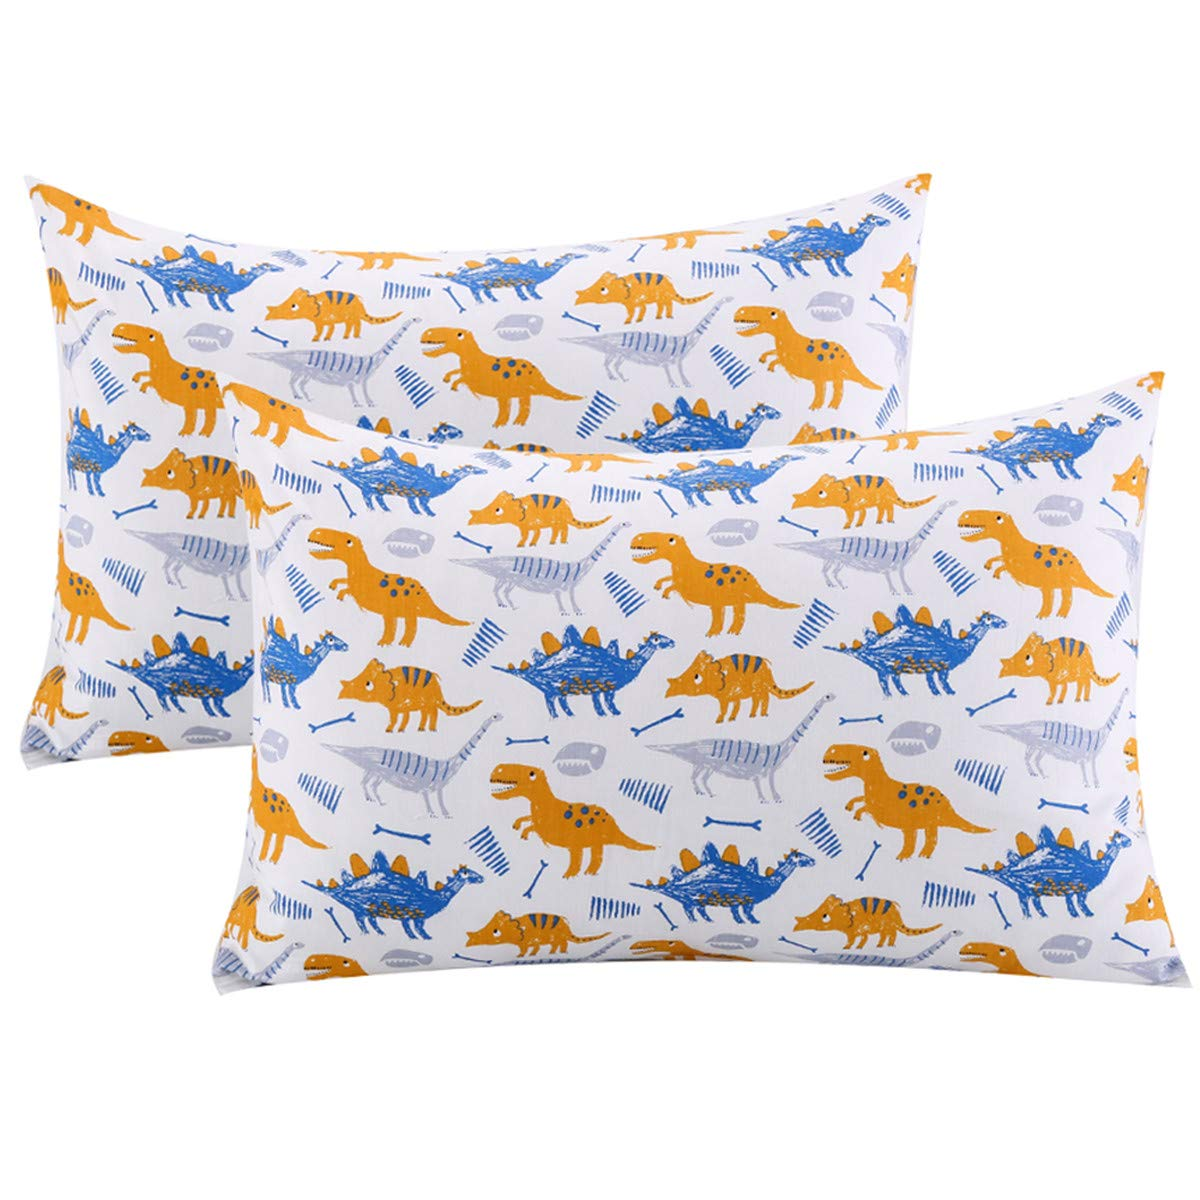 UOMNY Kids Toddler Pillowcases 2 Pack 100% Cotton Pillow Cover Pillowslip Case Fits Pillows sizesd 13 x 18 or 12x 16 for Kids Bedding Pillow Cover Baby Pillow Cases Dinosaur Pattern